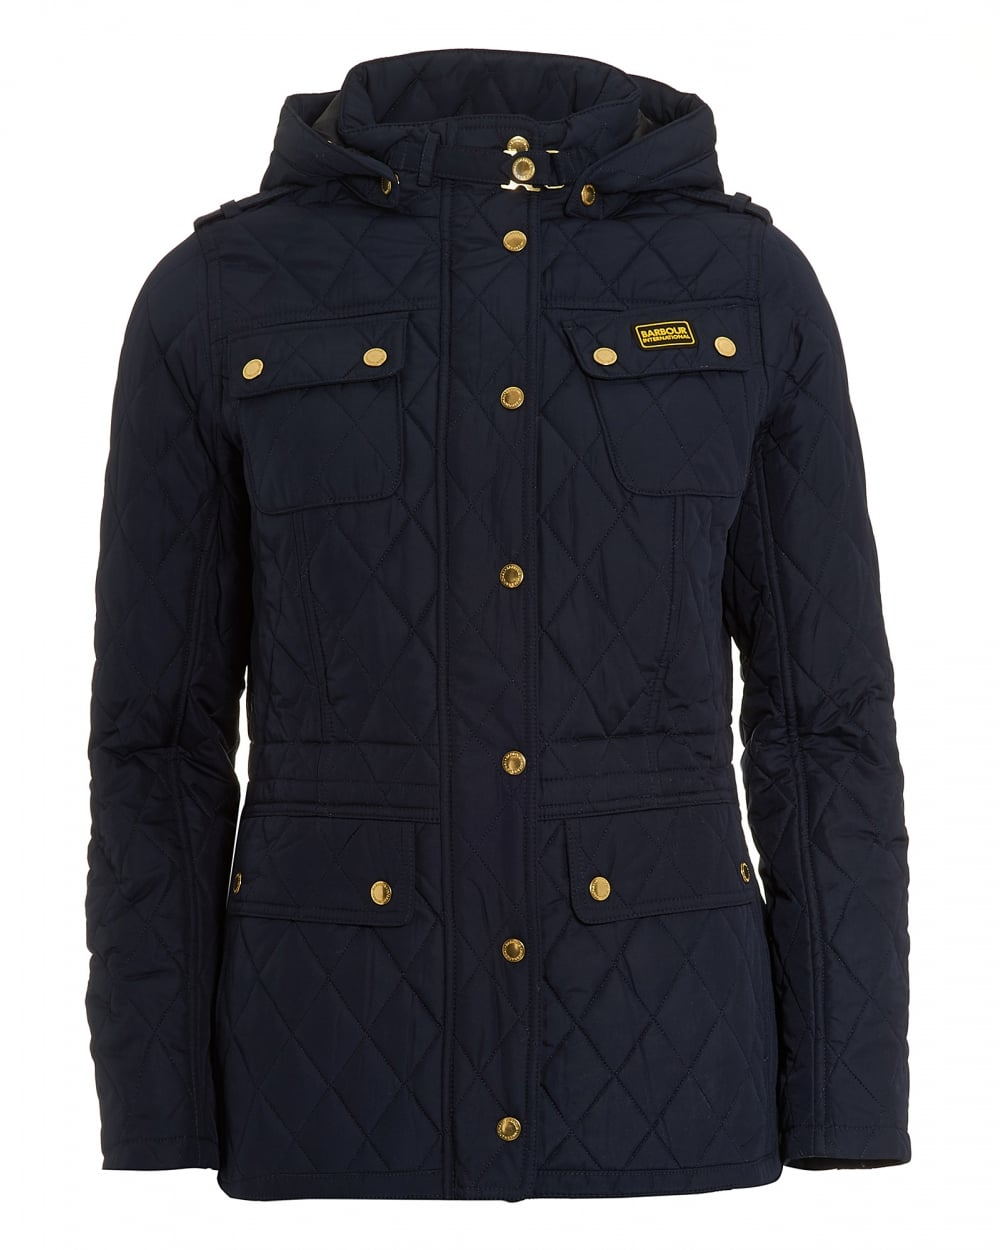 Shop blue quilted jacket at Neiman Marcus, where you will find free shipping on the latest in fashion from top designers.